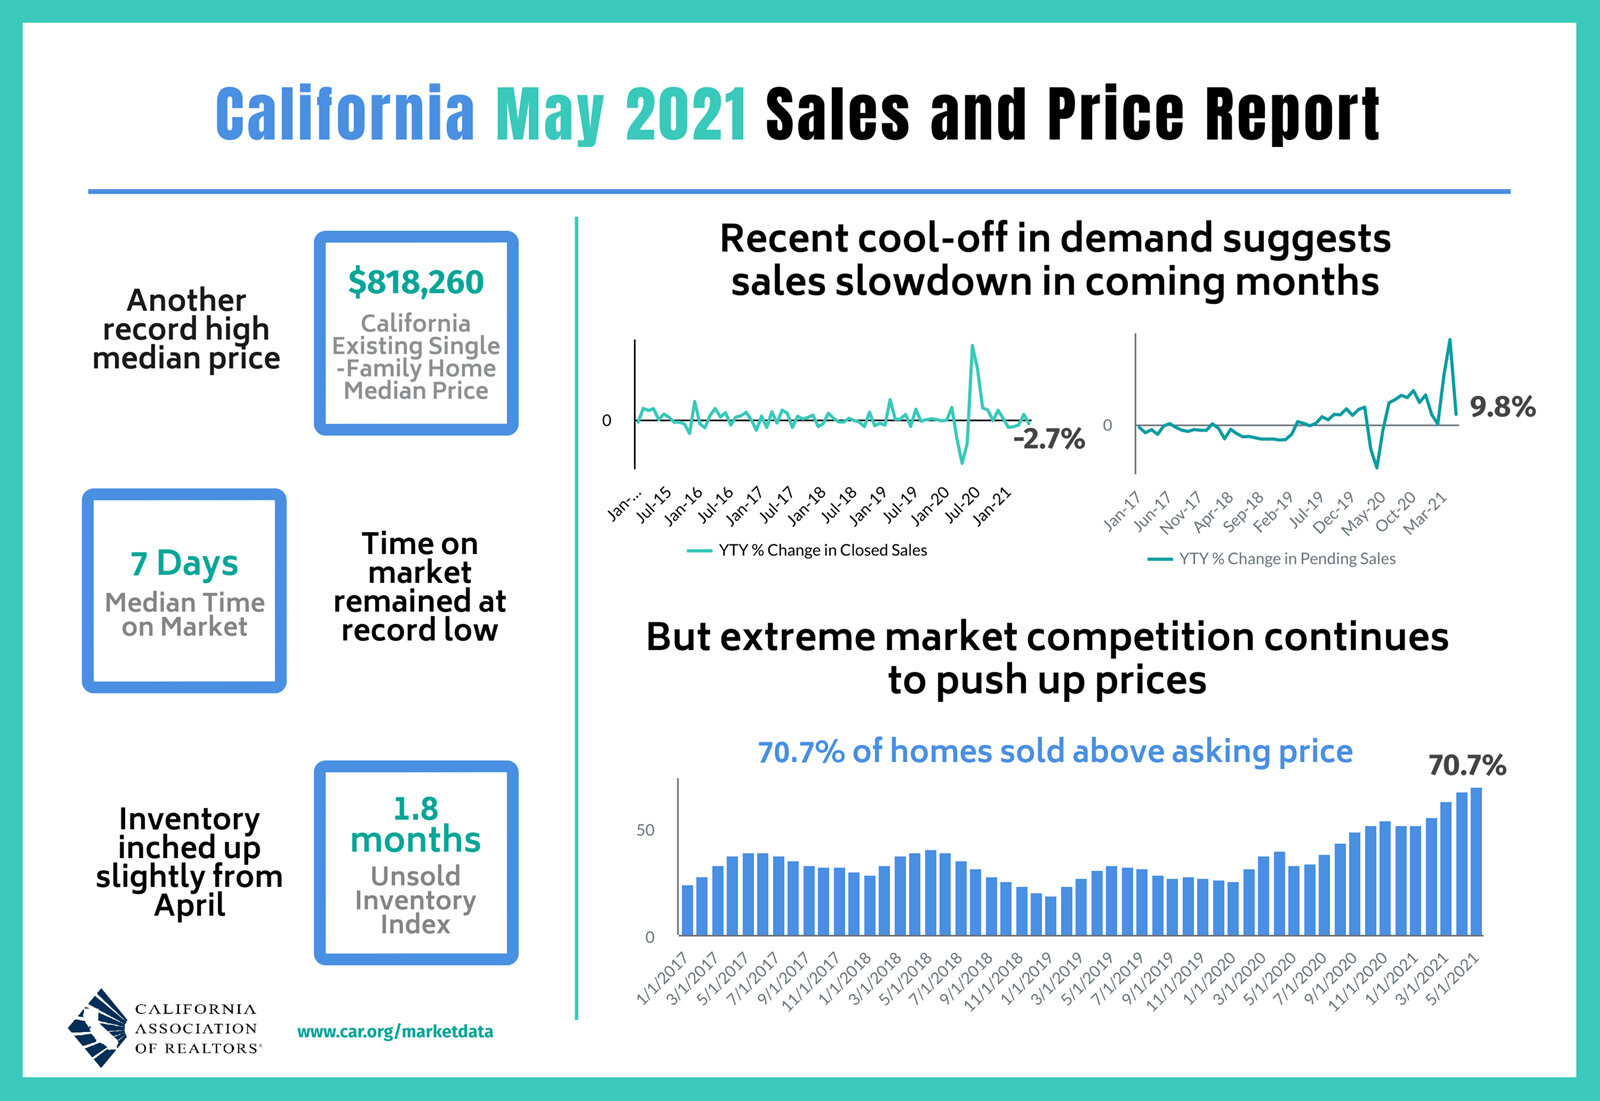 California-home-sales-data-for-May-2021.jpg